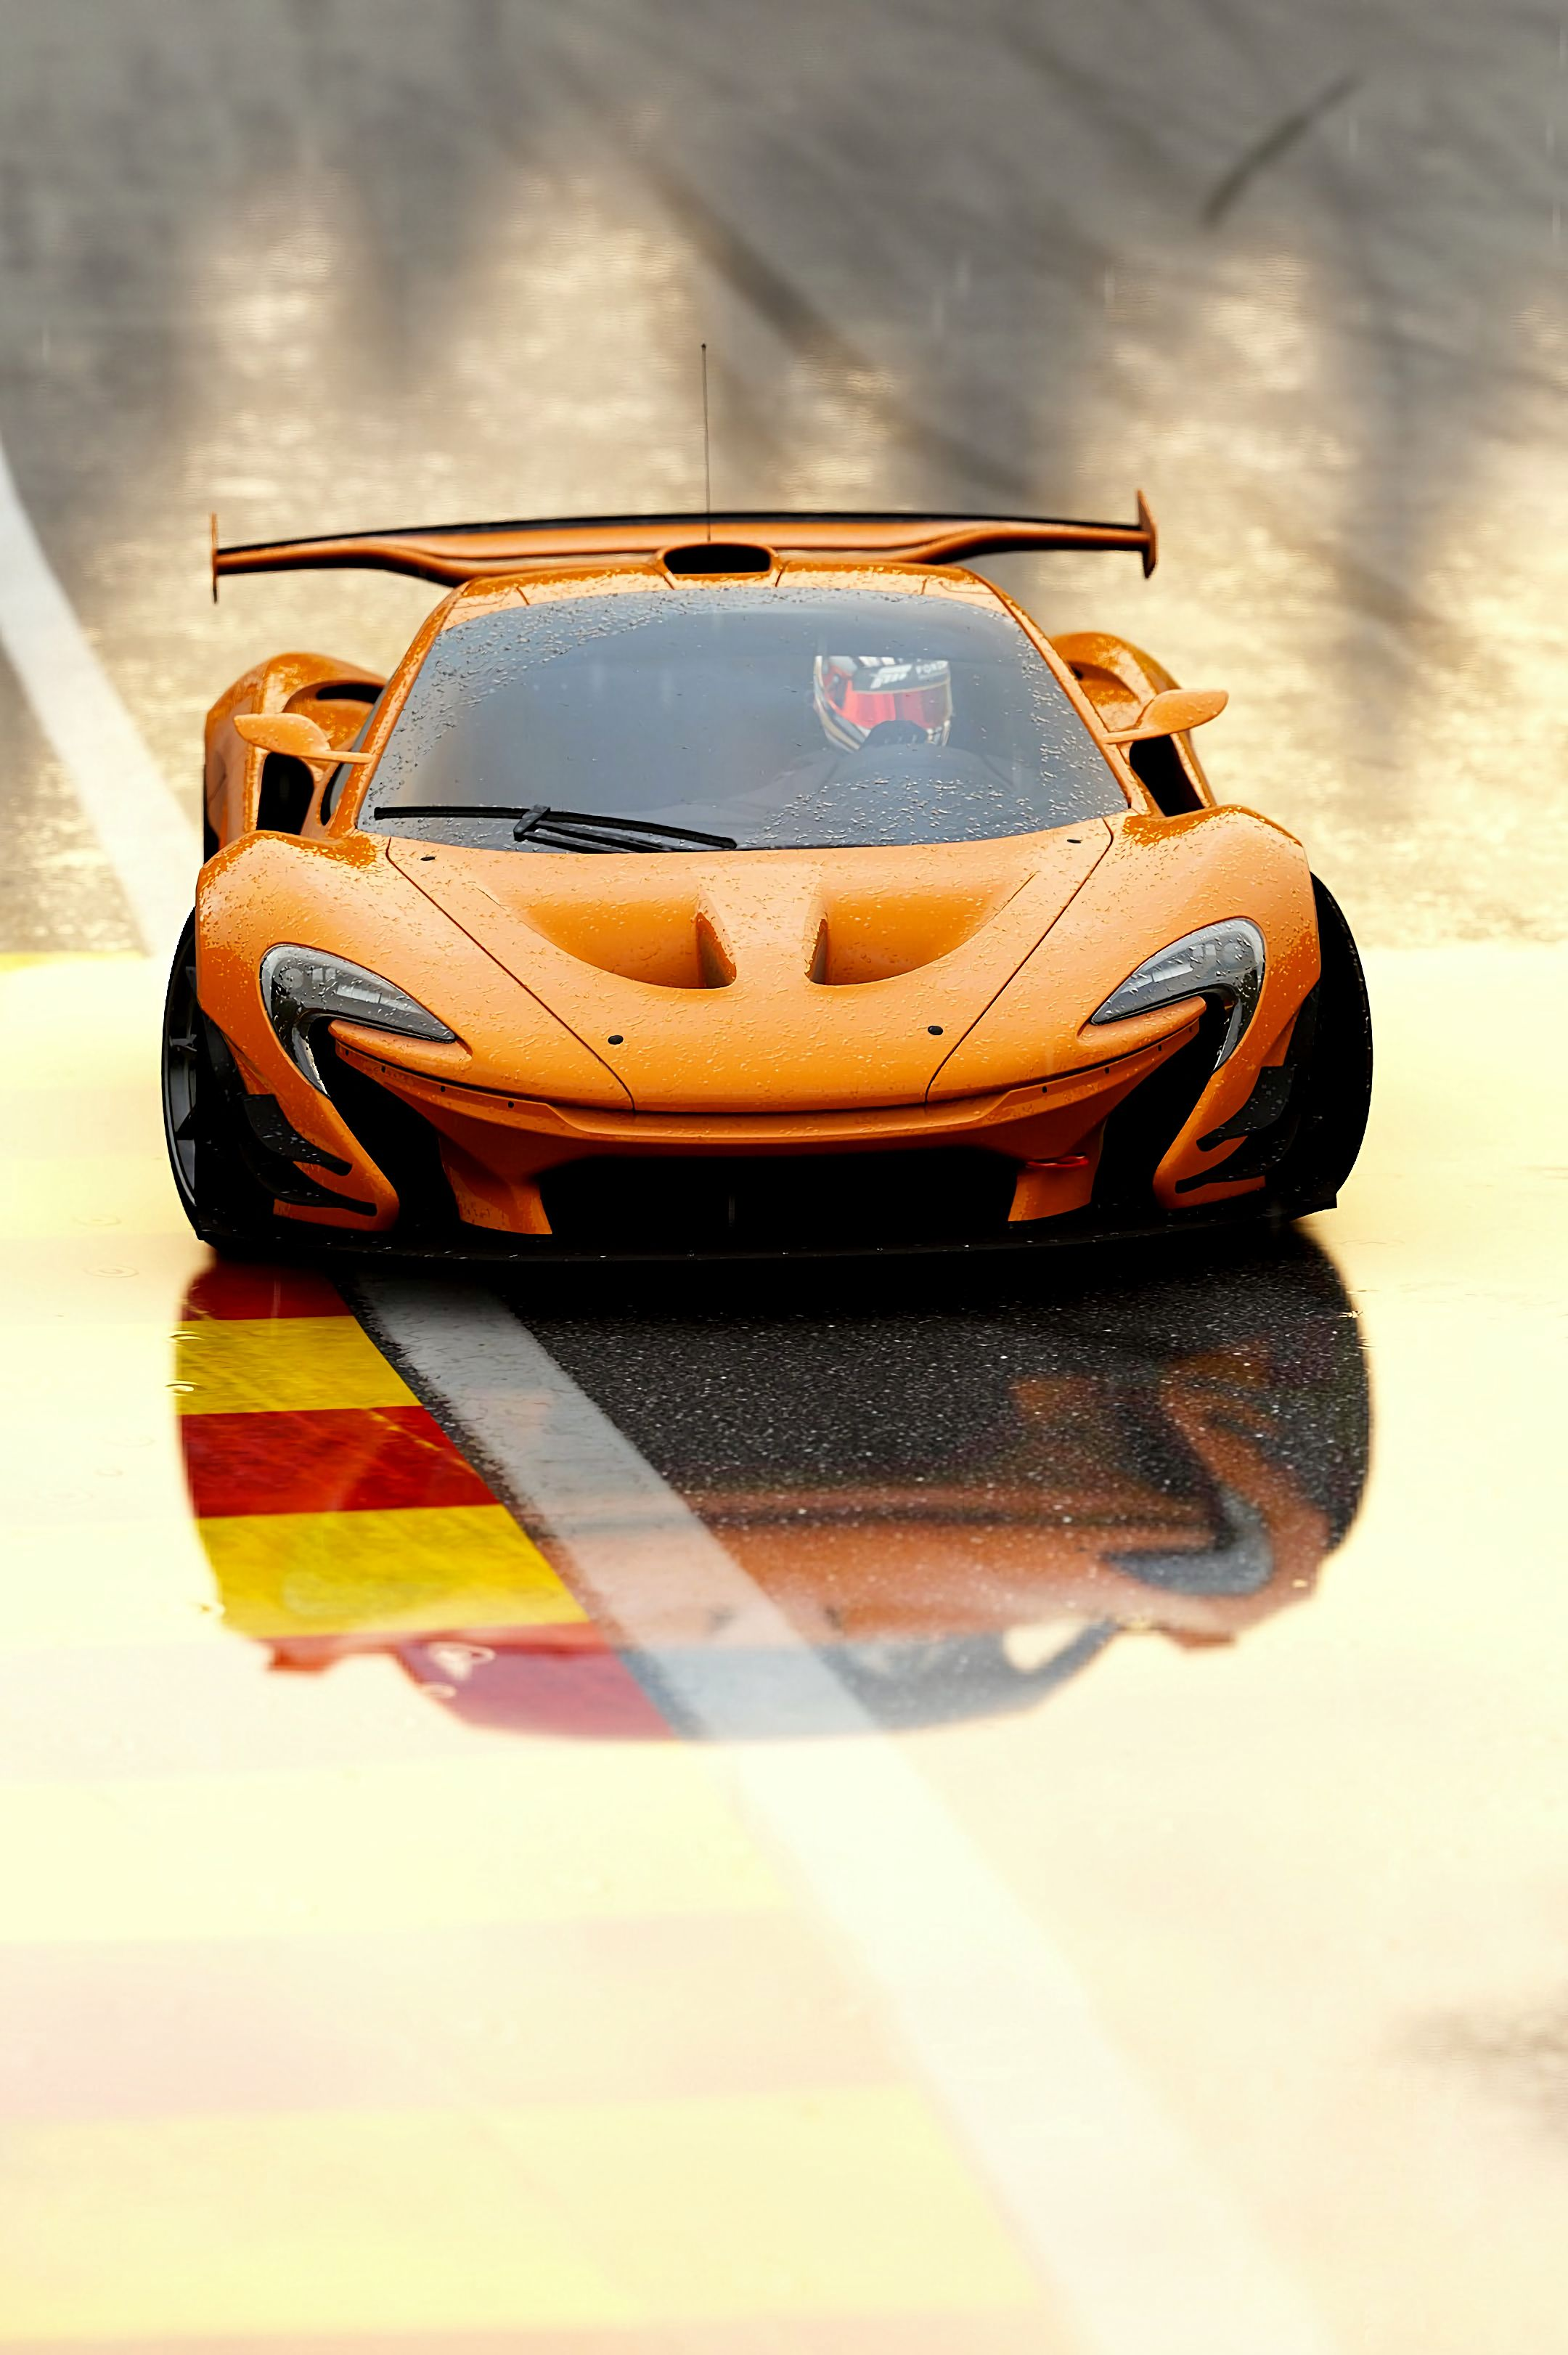 148074 Screensavers and Wallpapers Races for phone. Download Sports, Races, Mclaren, Cars, Front View, Sports Car, Mclaren P1, Mclaren P1 Gtr pictures for free